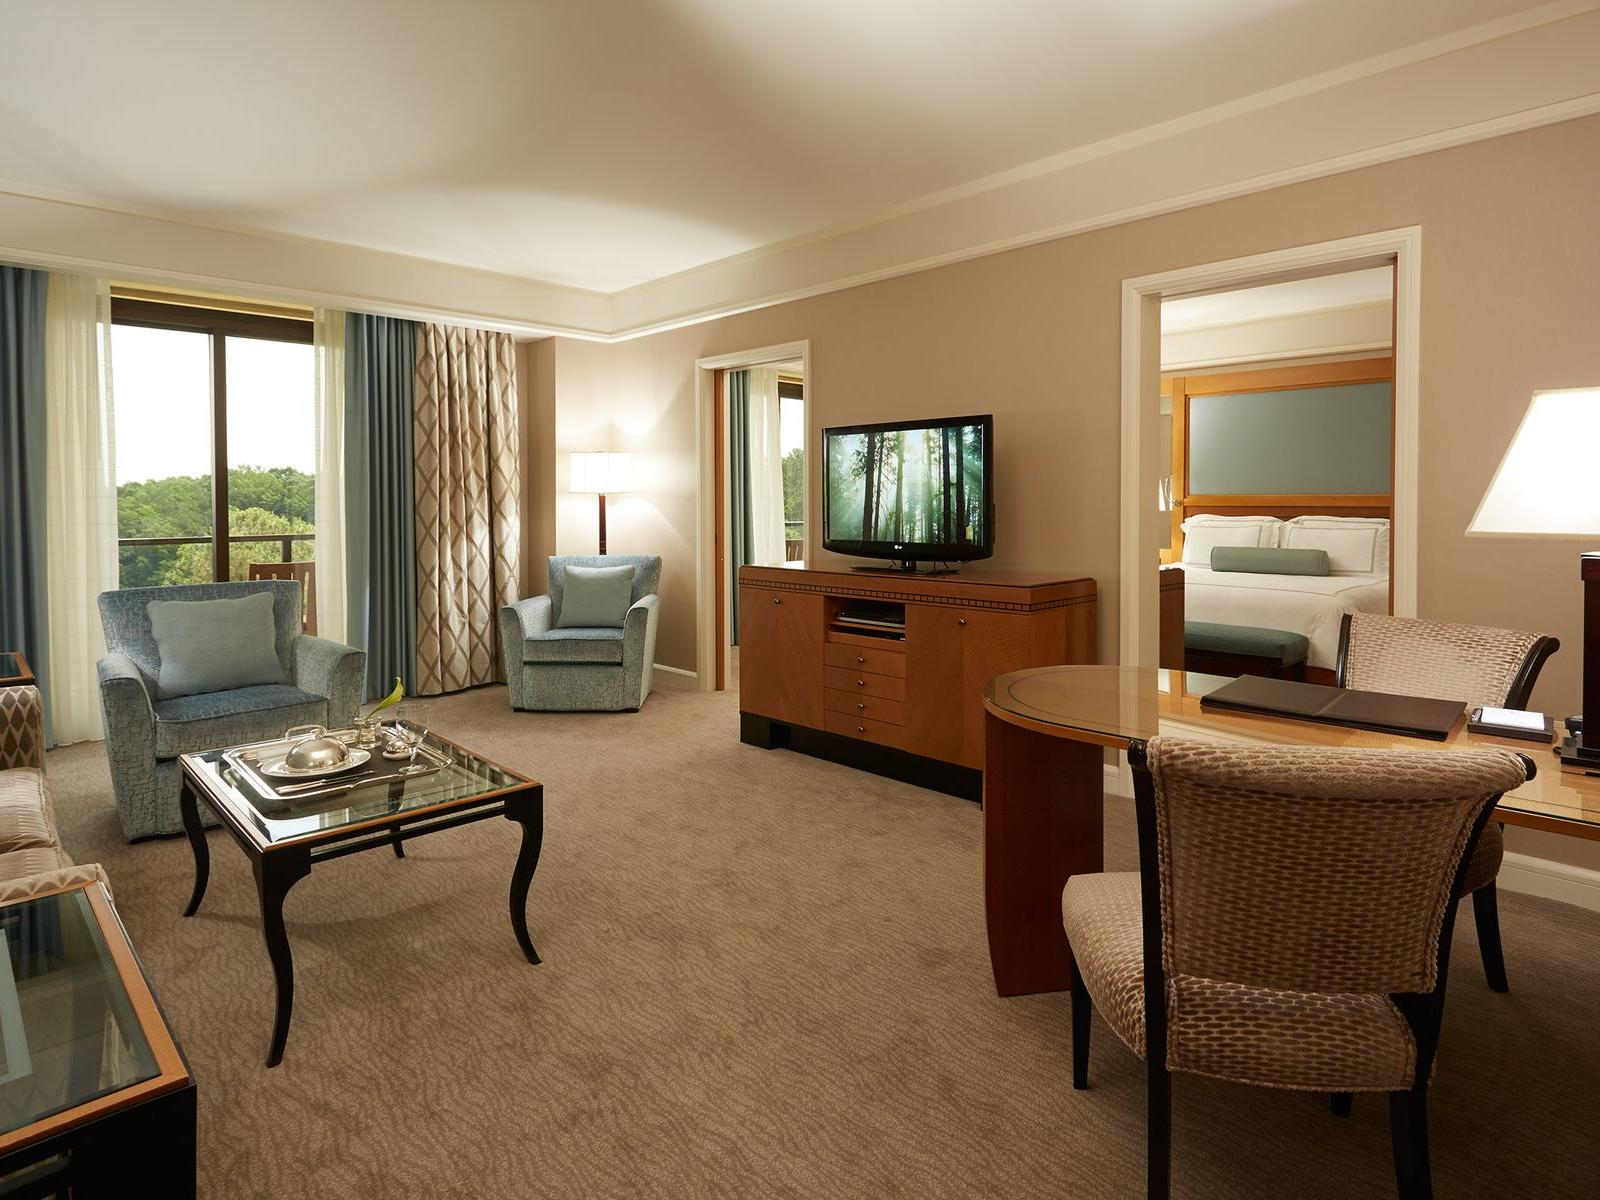 living room of hotel suite